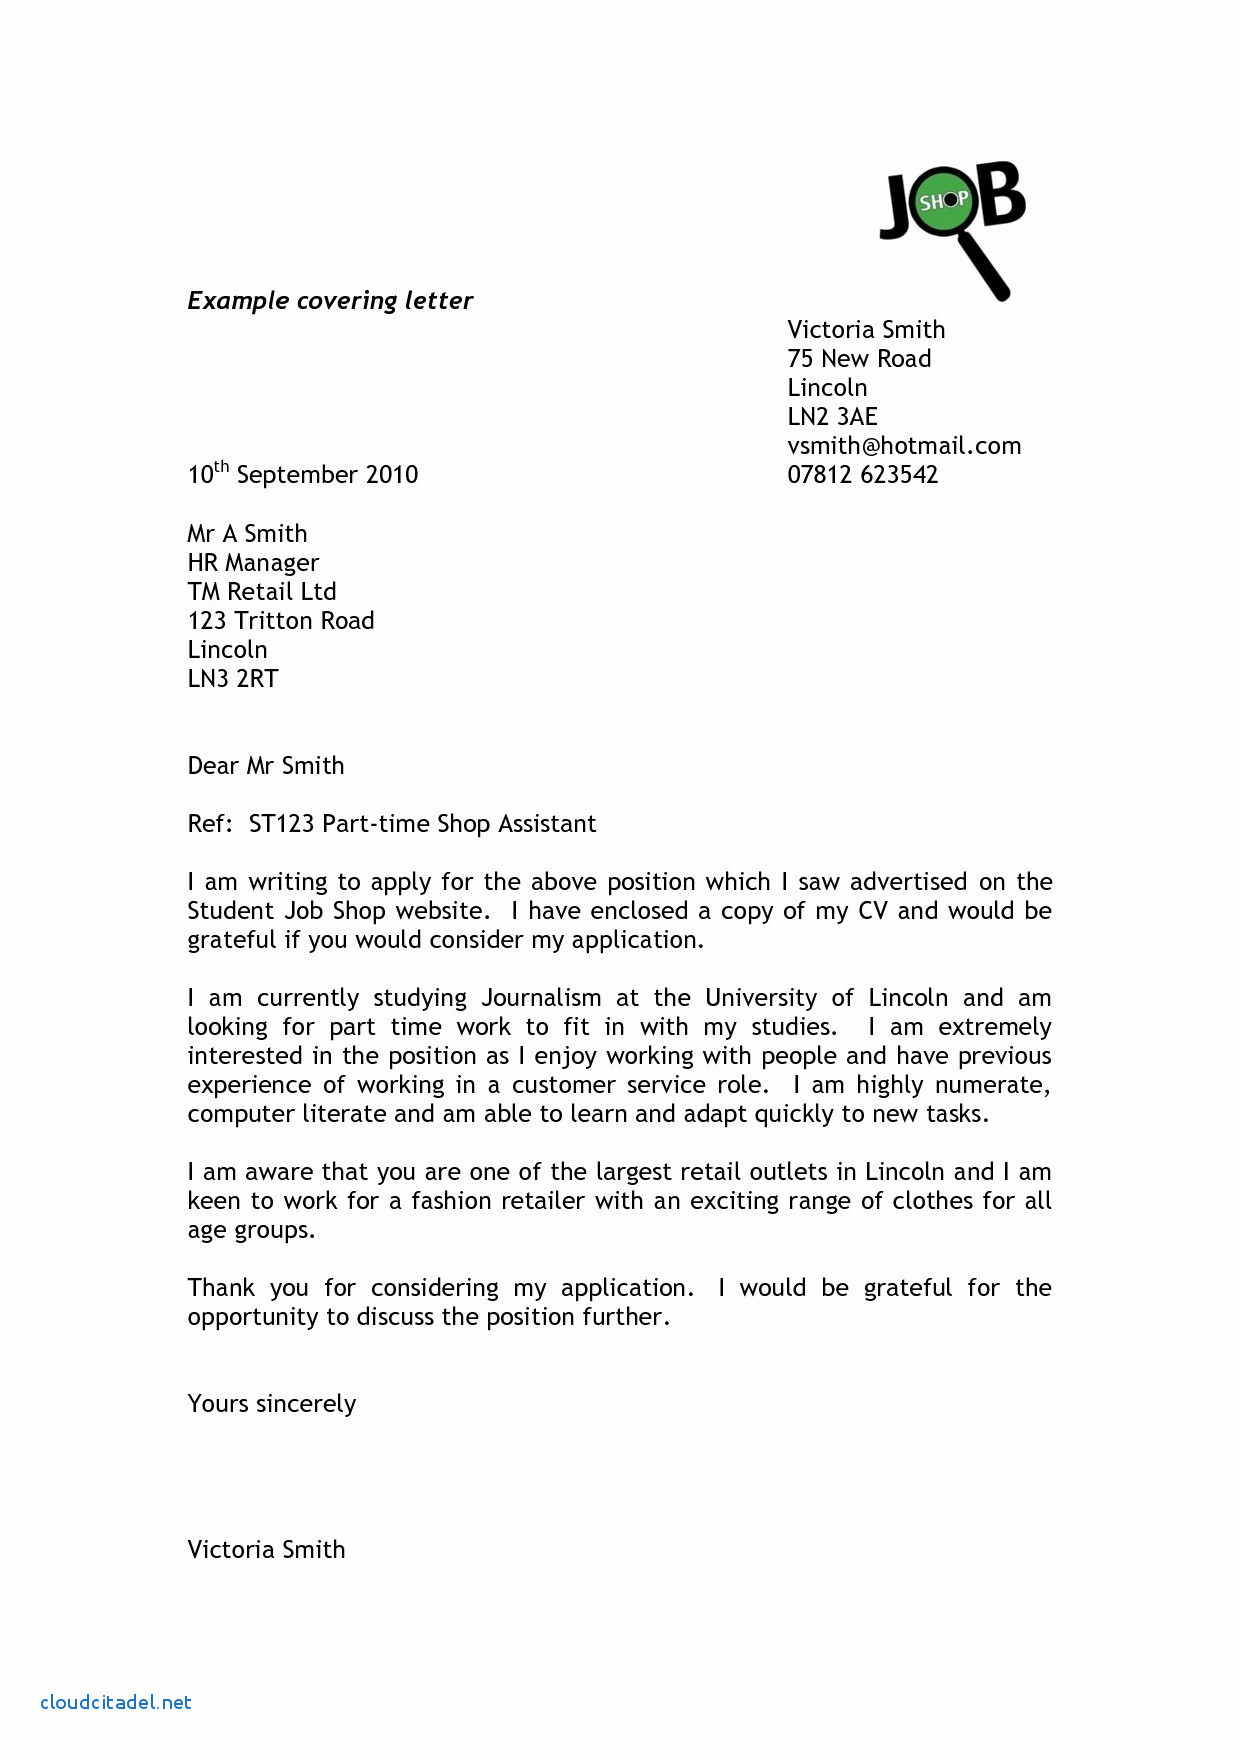 employment verification letter sample and template inspirational application letter for employment manager job sample